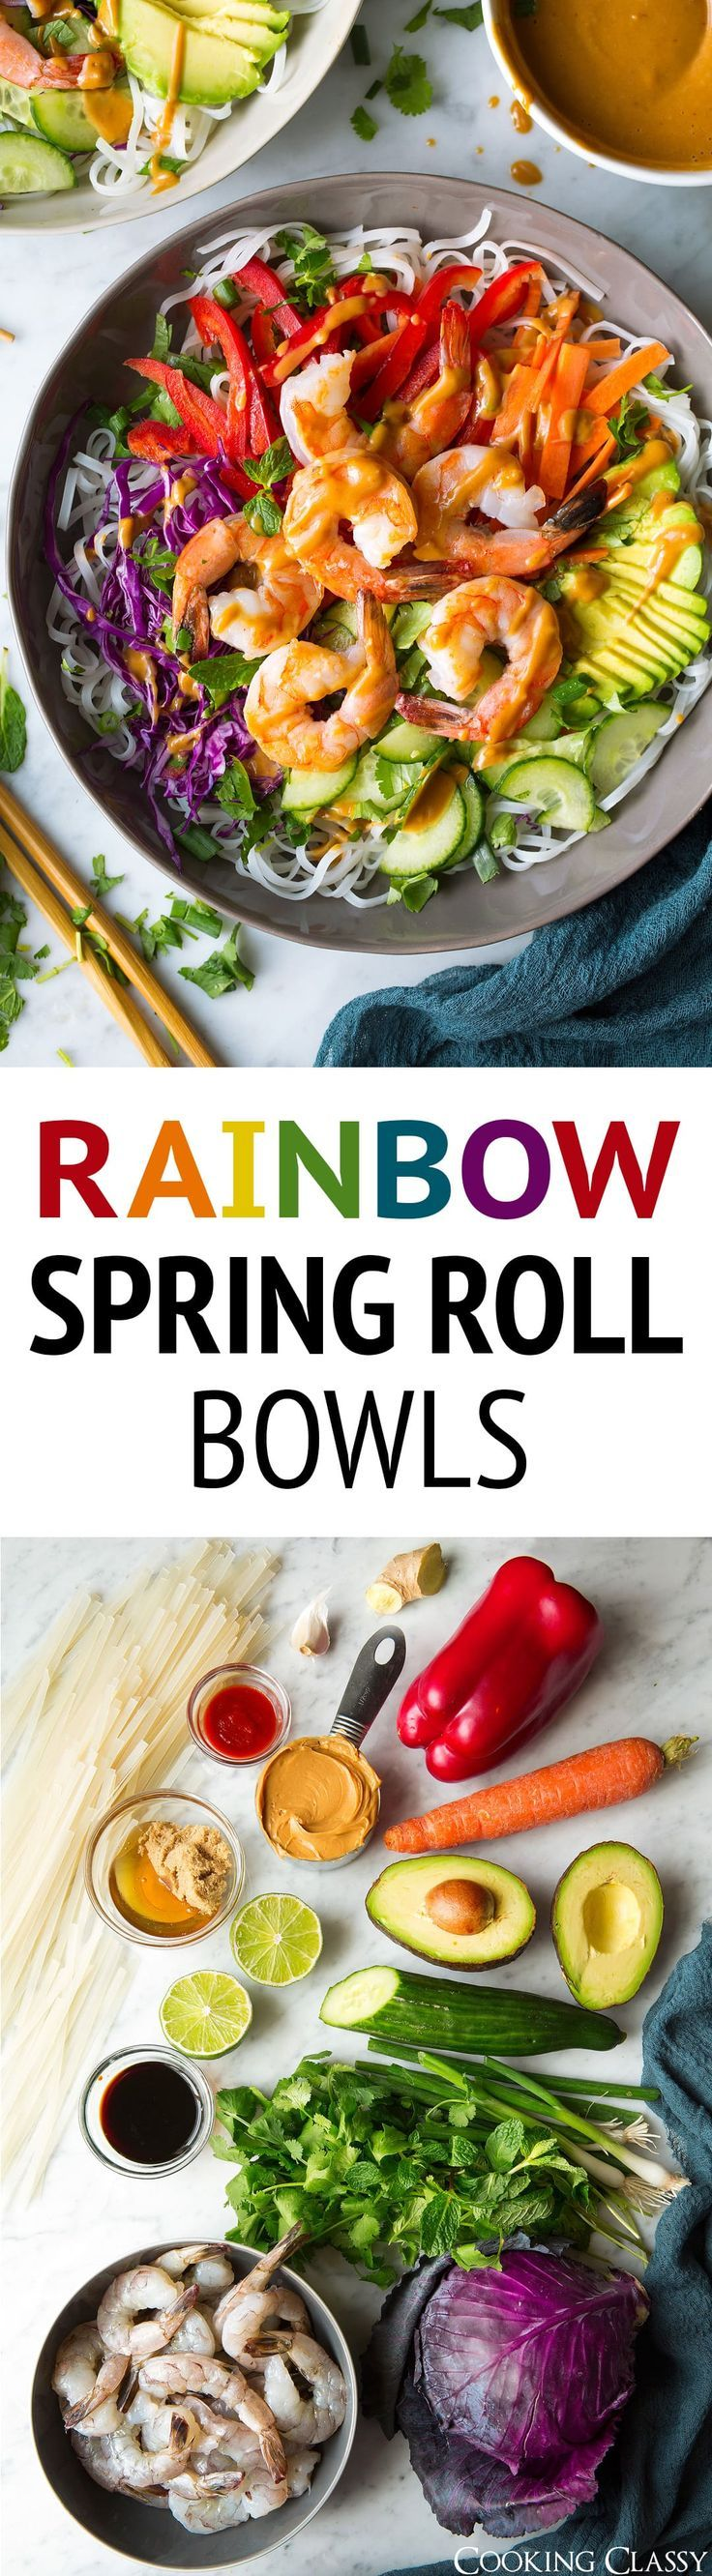 Rainbow Spring Roll Bowls with Shrimp or Chicken and Peanut Sauce these are SO GOOD! They're boasting with bright and rich flavors and a beautiful array of colors. Then add shrimp or chicken to the mix to make them that much more filling. I just can't get enough of these bowls! #springrolls #summerrolls #chicken #shrimp #bowls #healthyrecipe #thai     via @cookingclassy